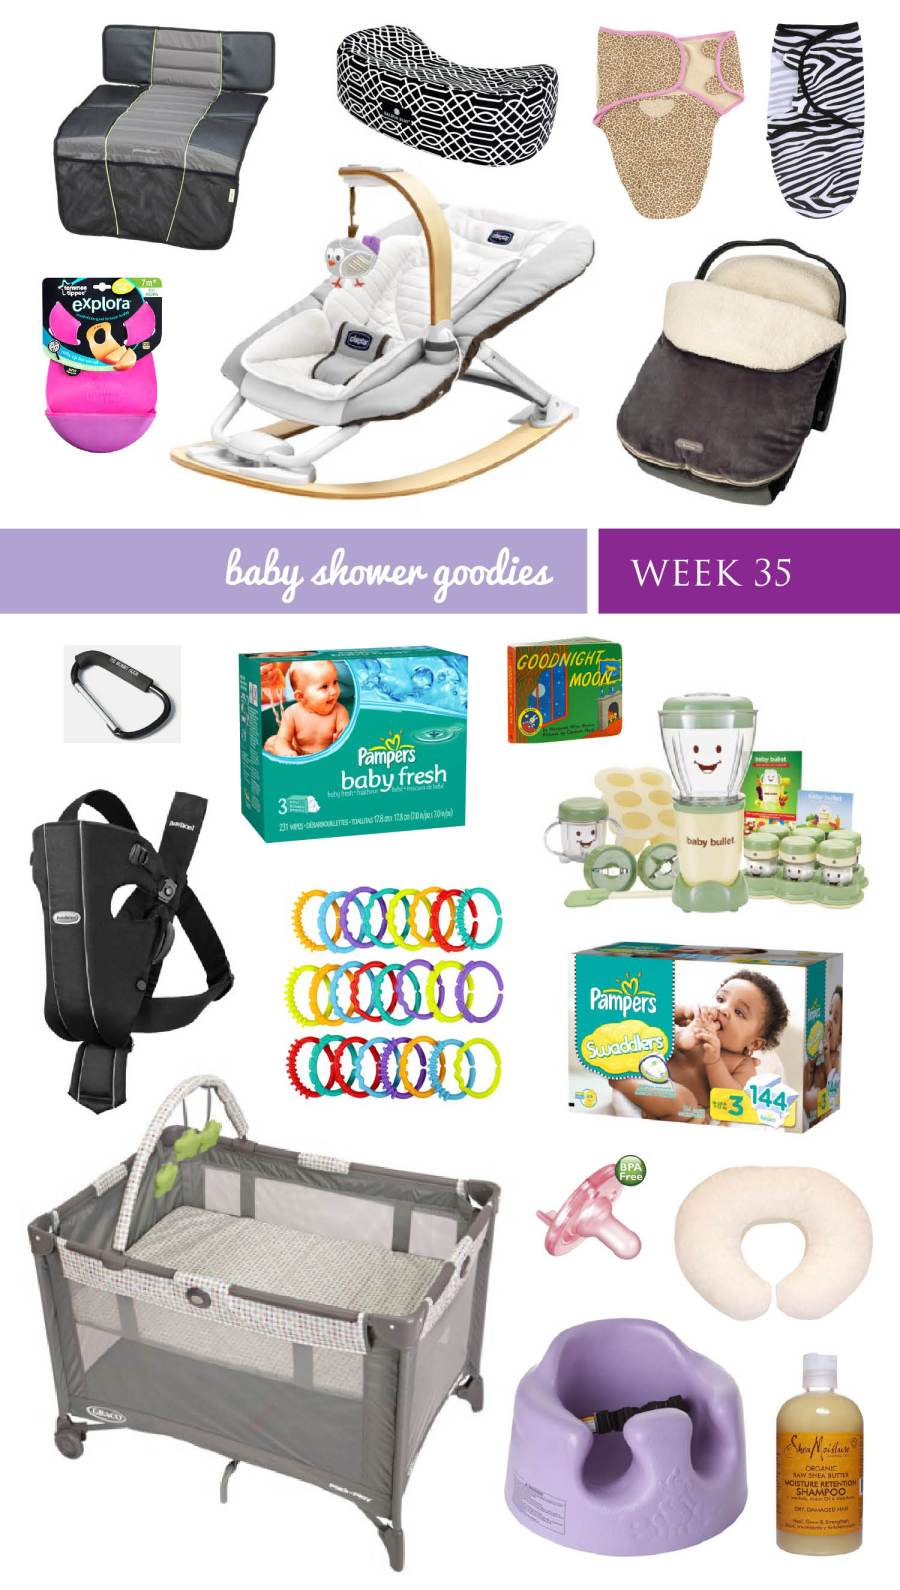 BABY SHOWER GOODS